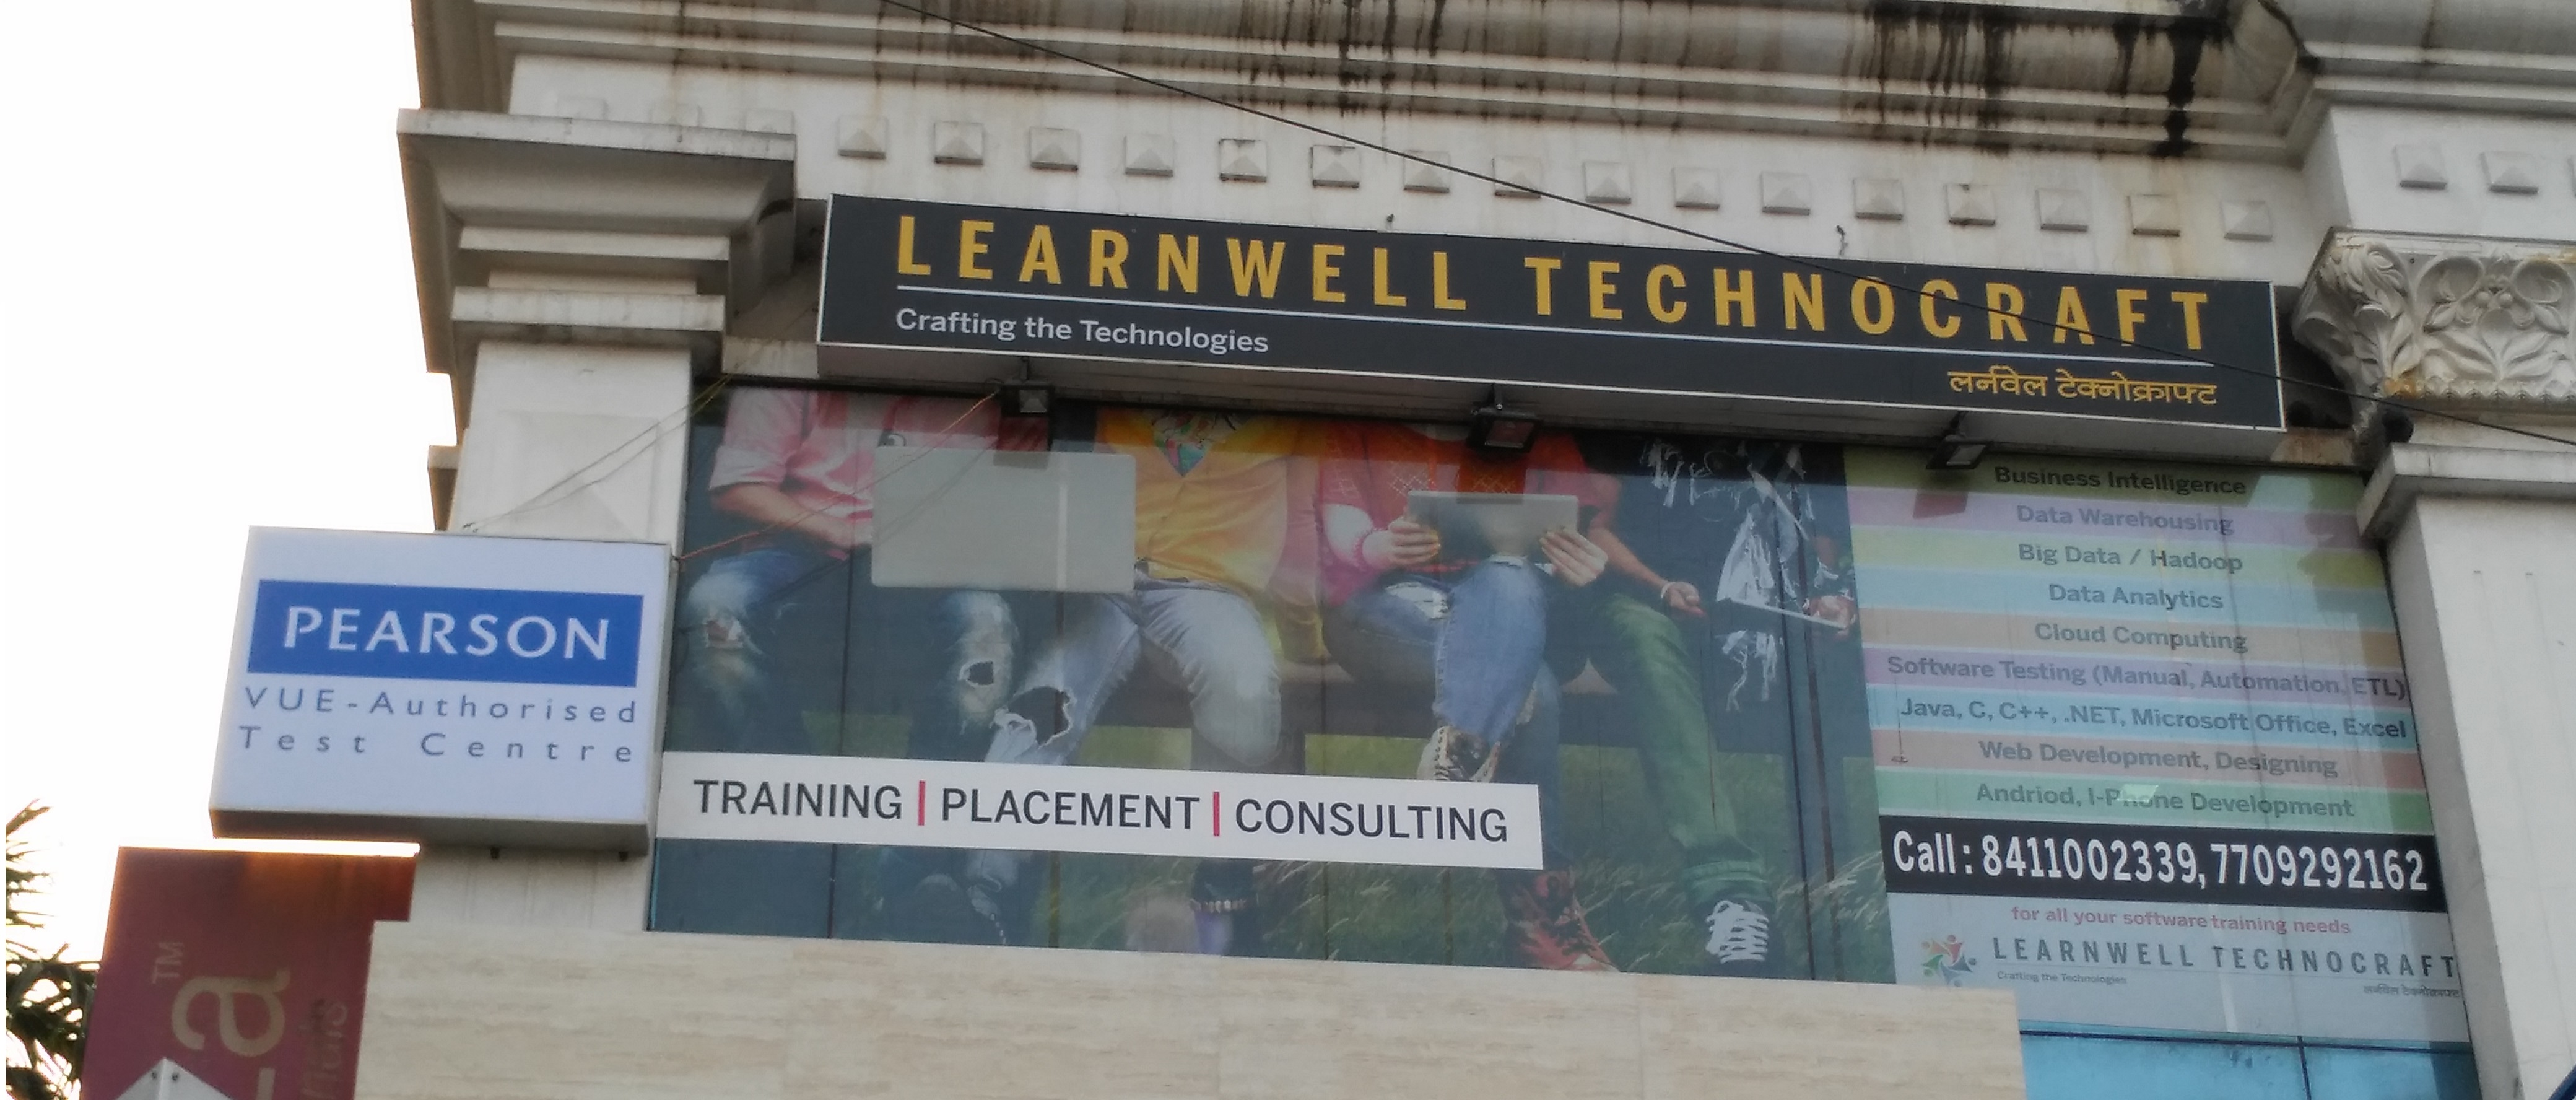 Learnwell Technocraft Image6